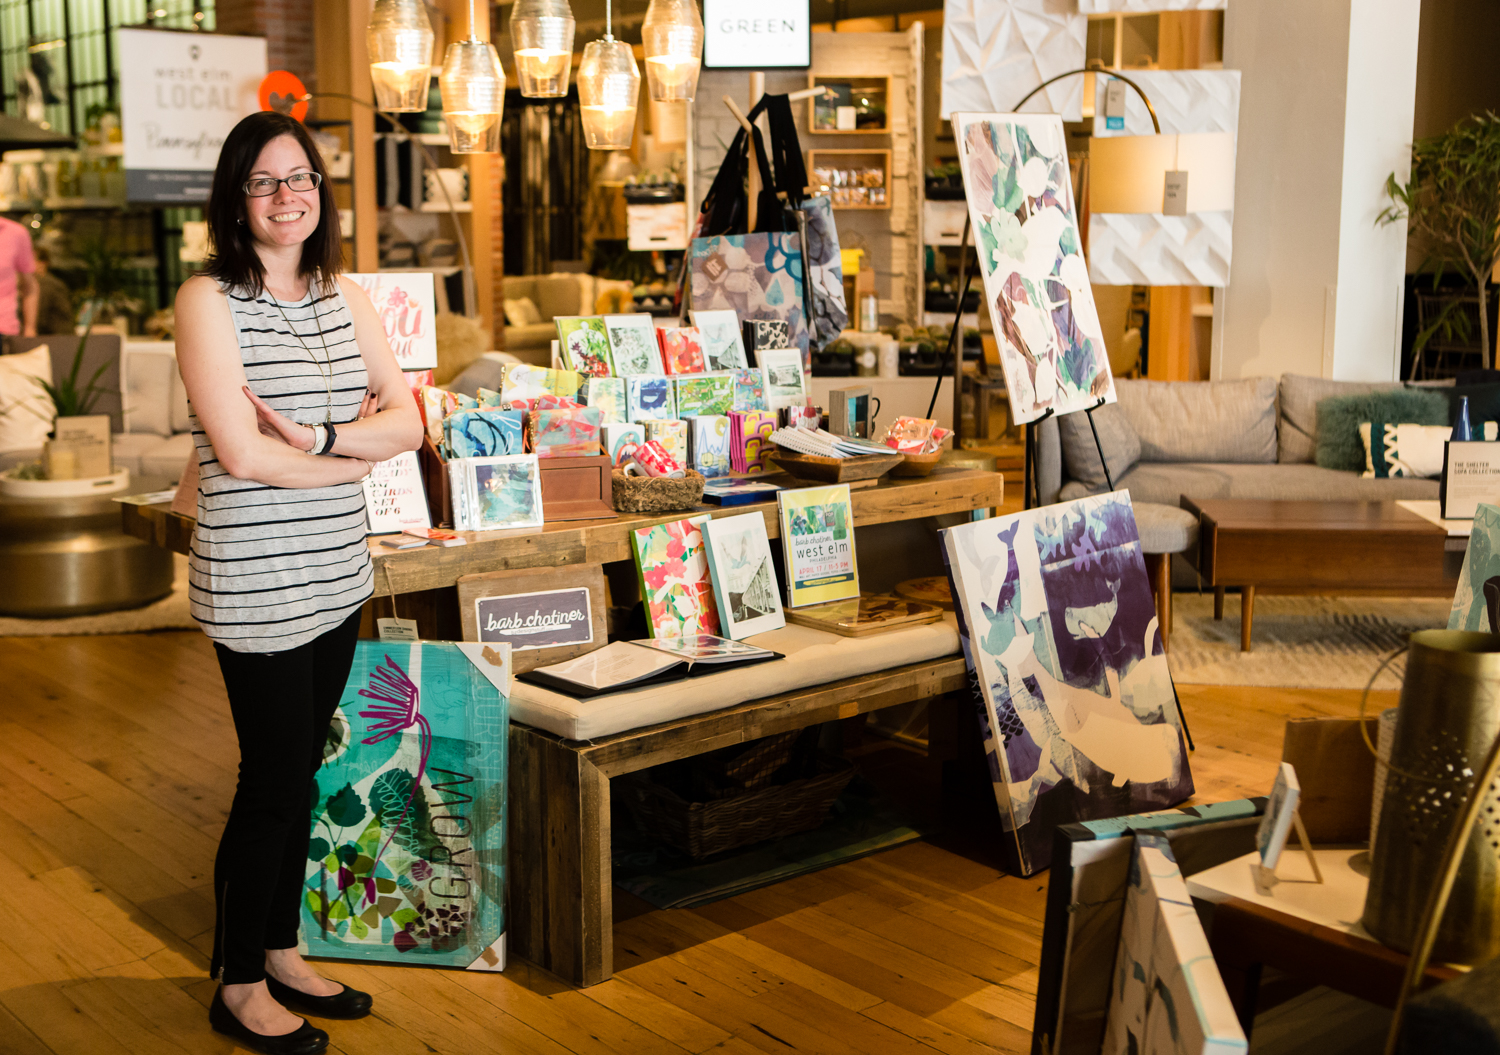 Barb Chotiner at her West Elm Philly pop up shop on April 17, 2016